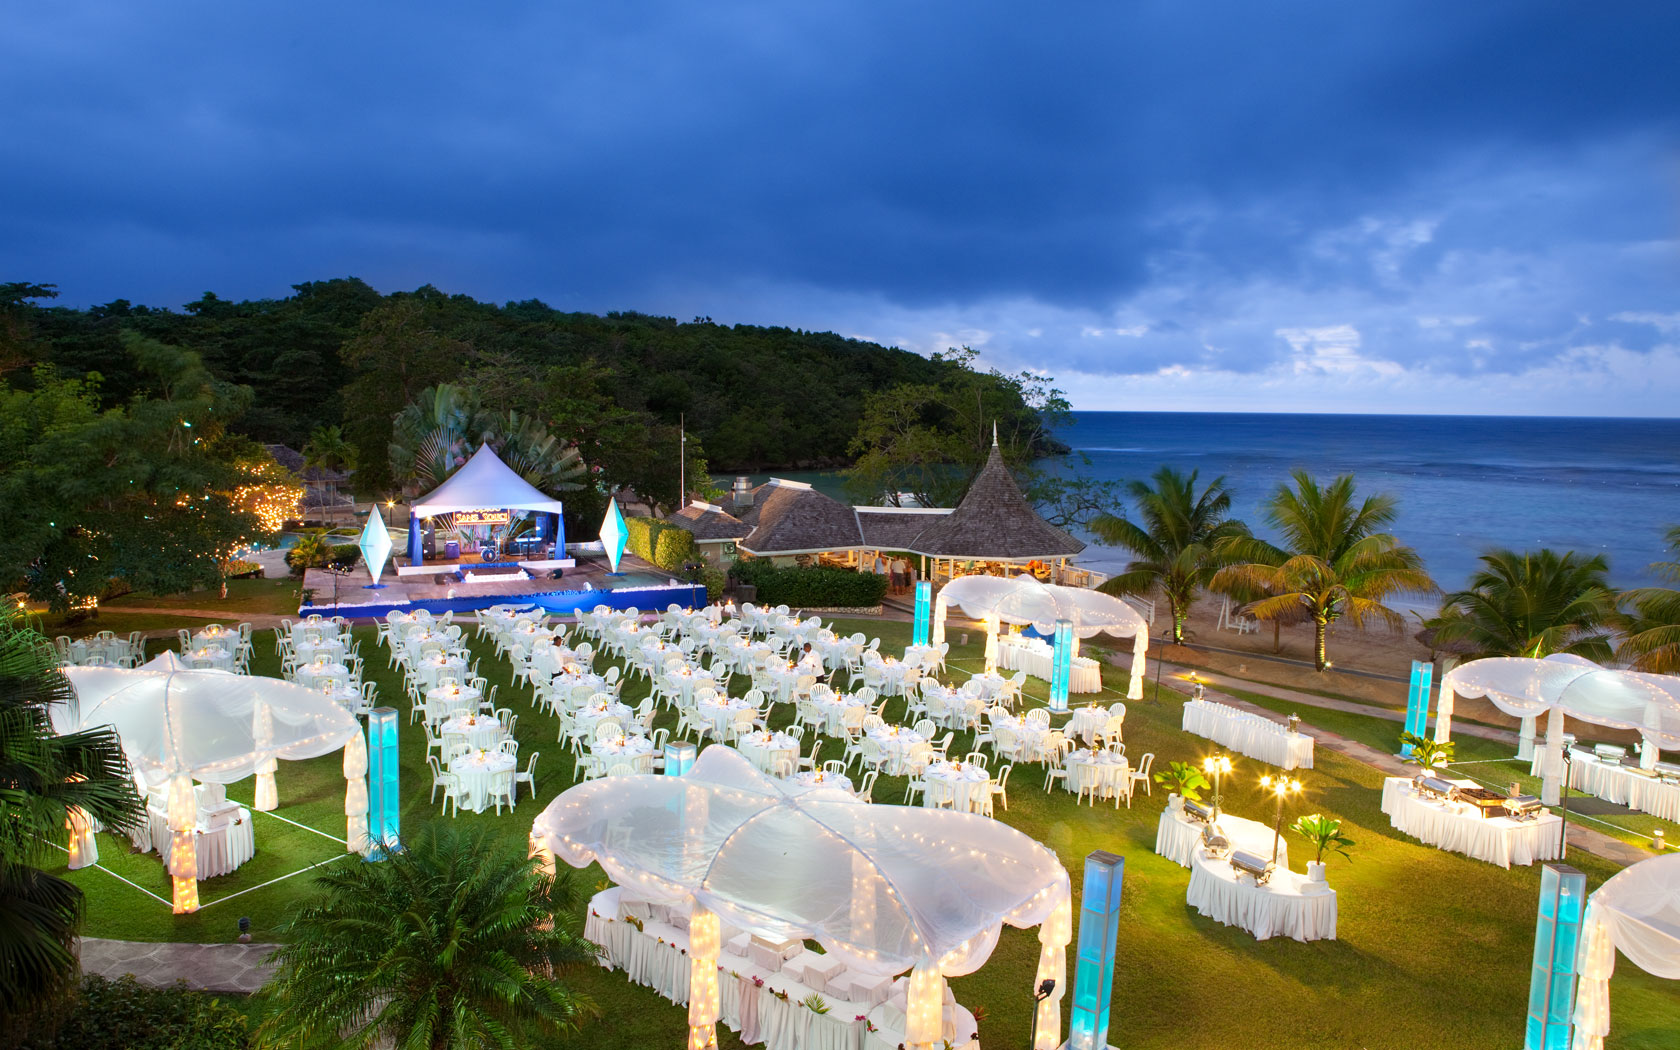 Wedding Options At The All Inclusive Couples San Souci Resort